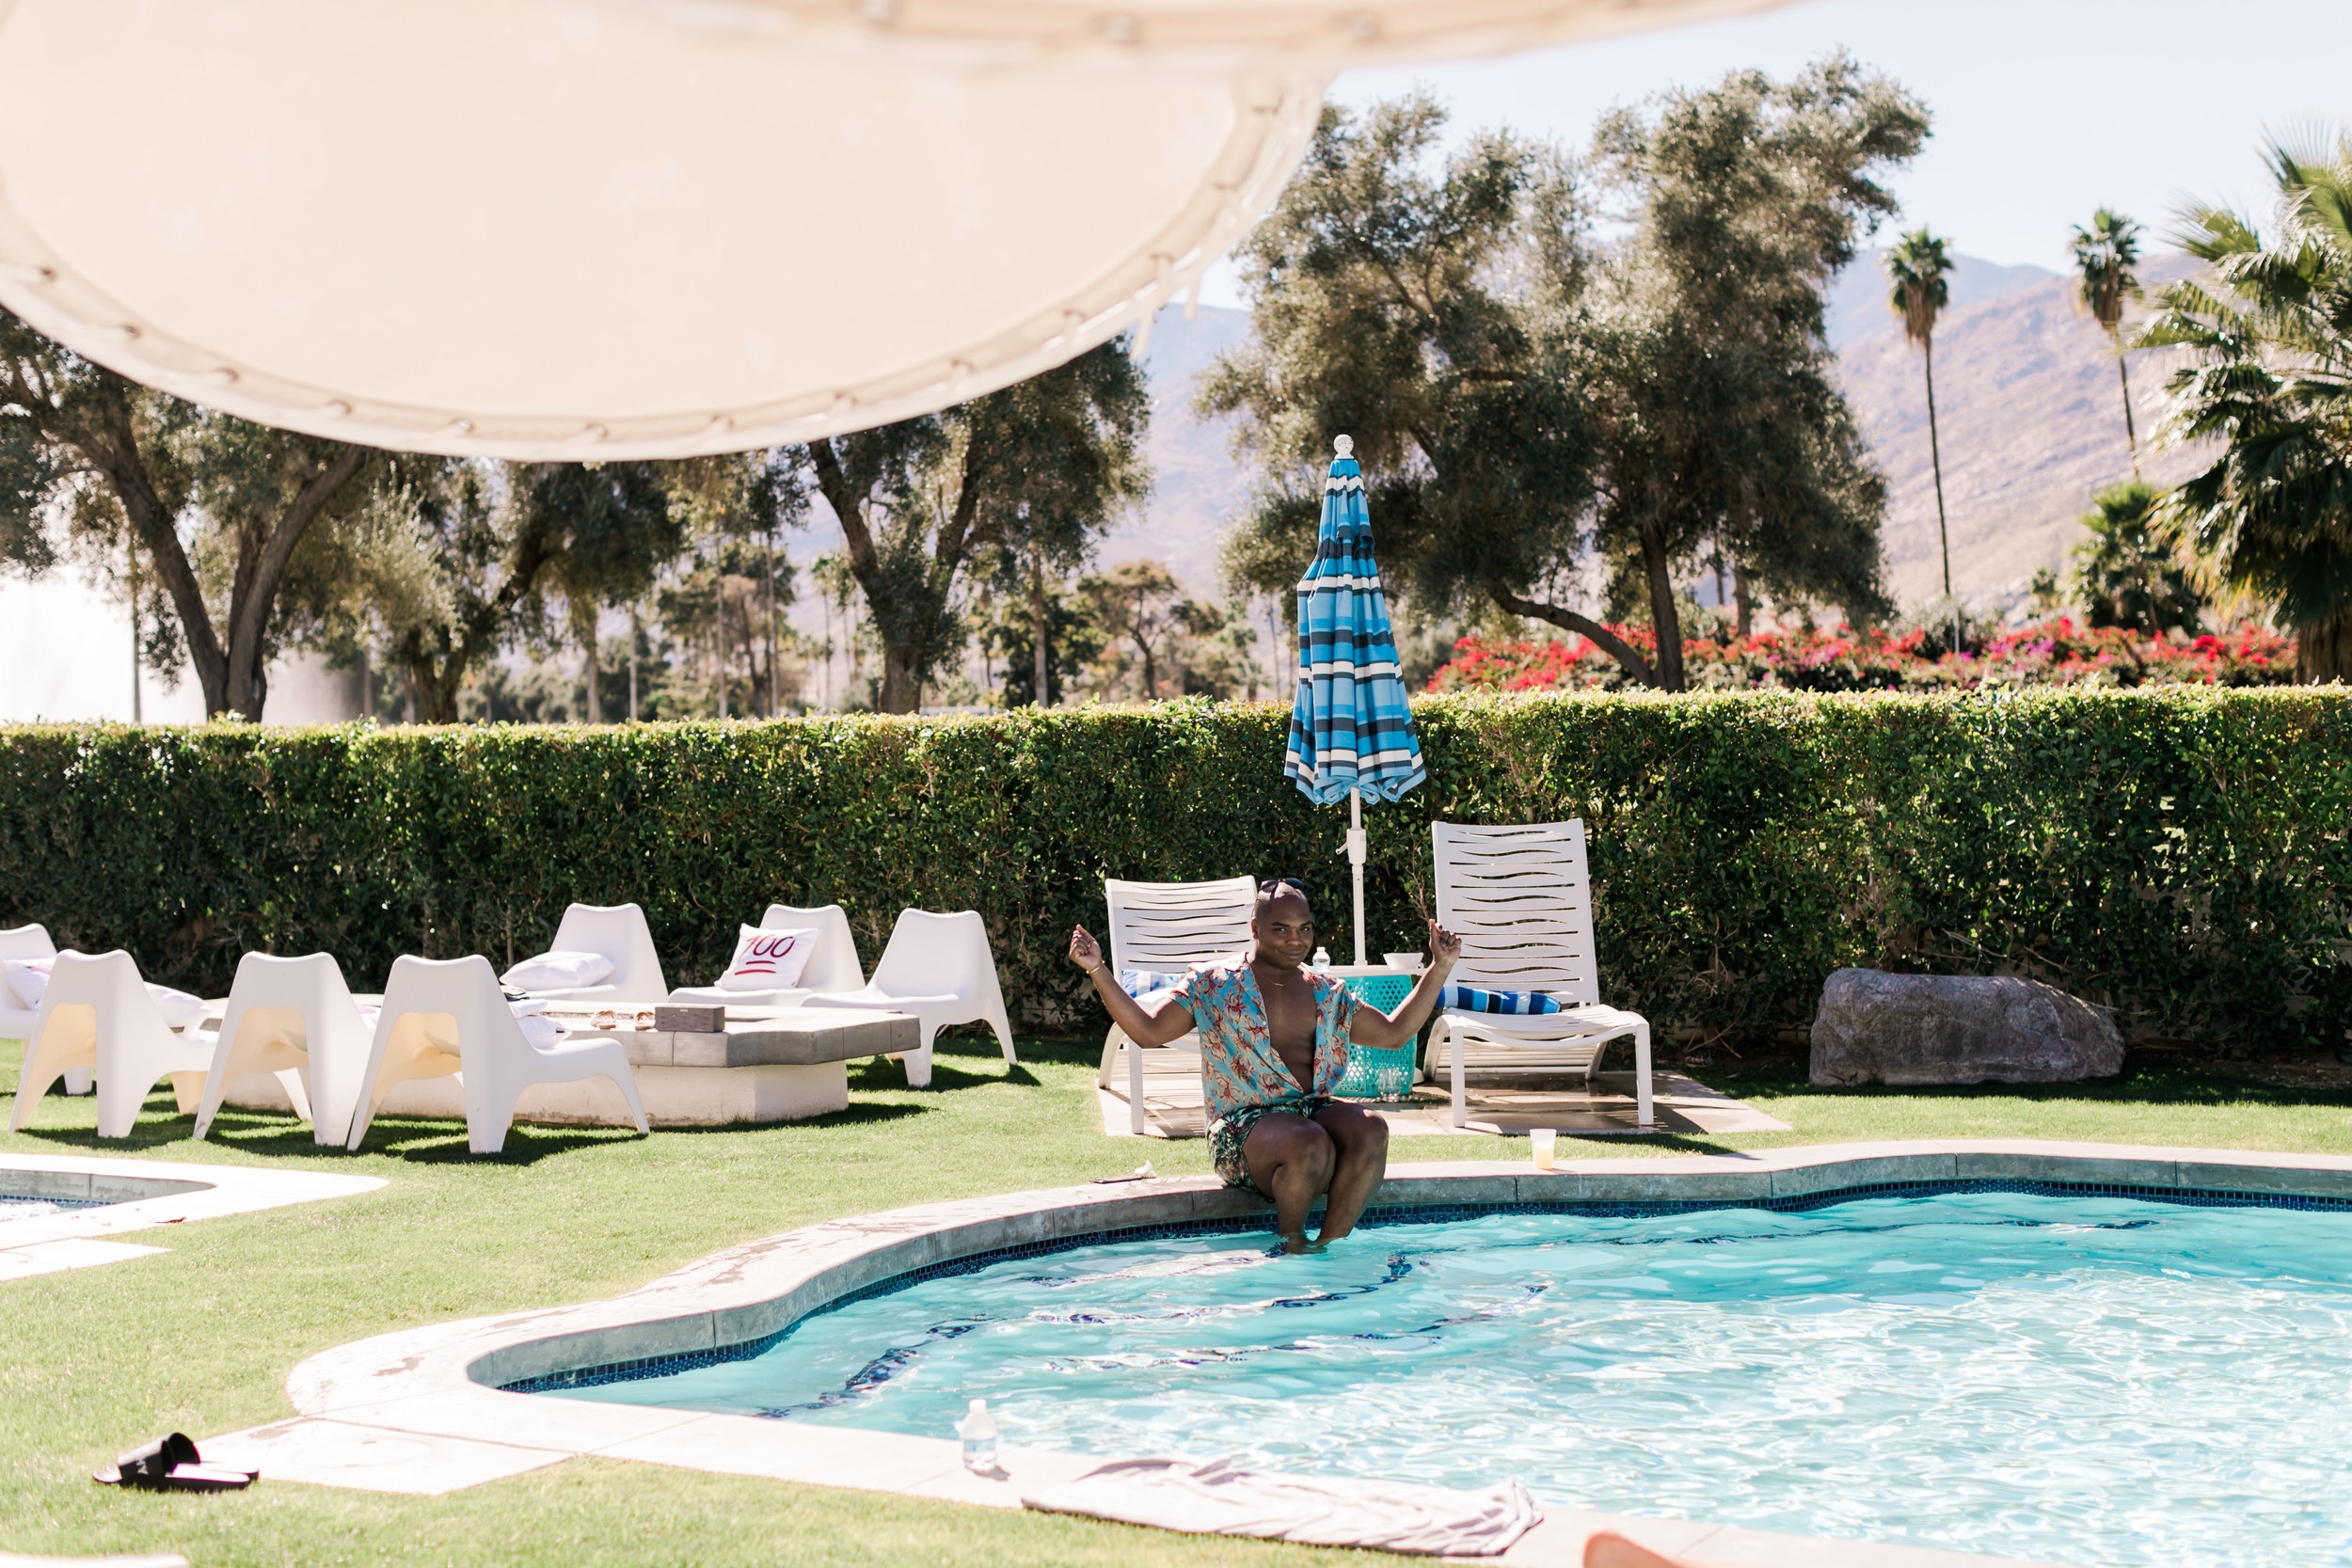 Huge Palm Springs Airbnb   Palm Springs Bachelorette Party